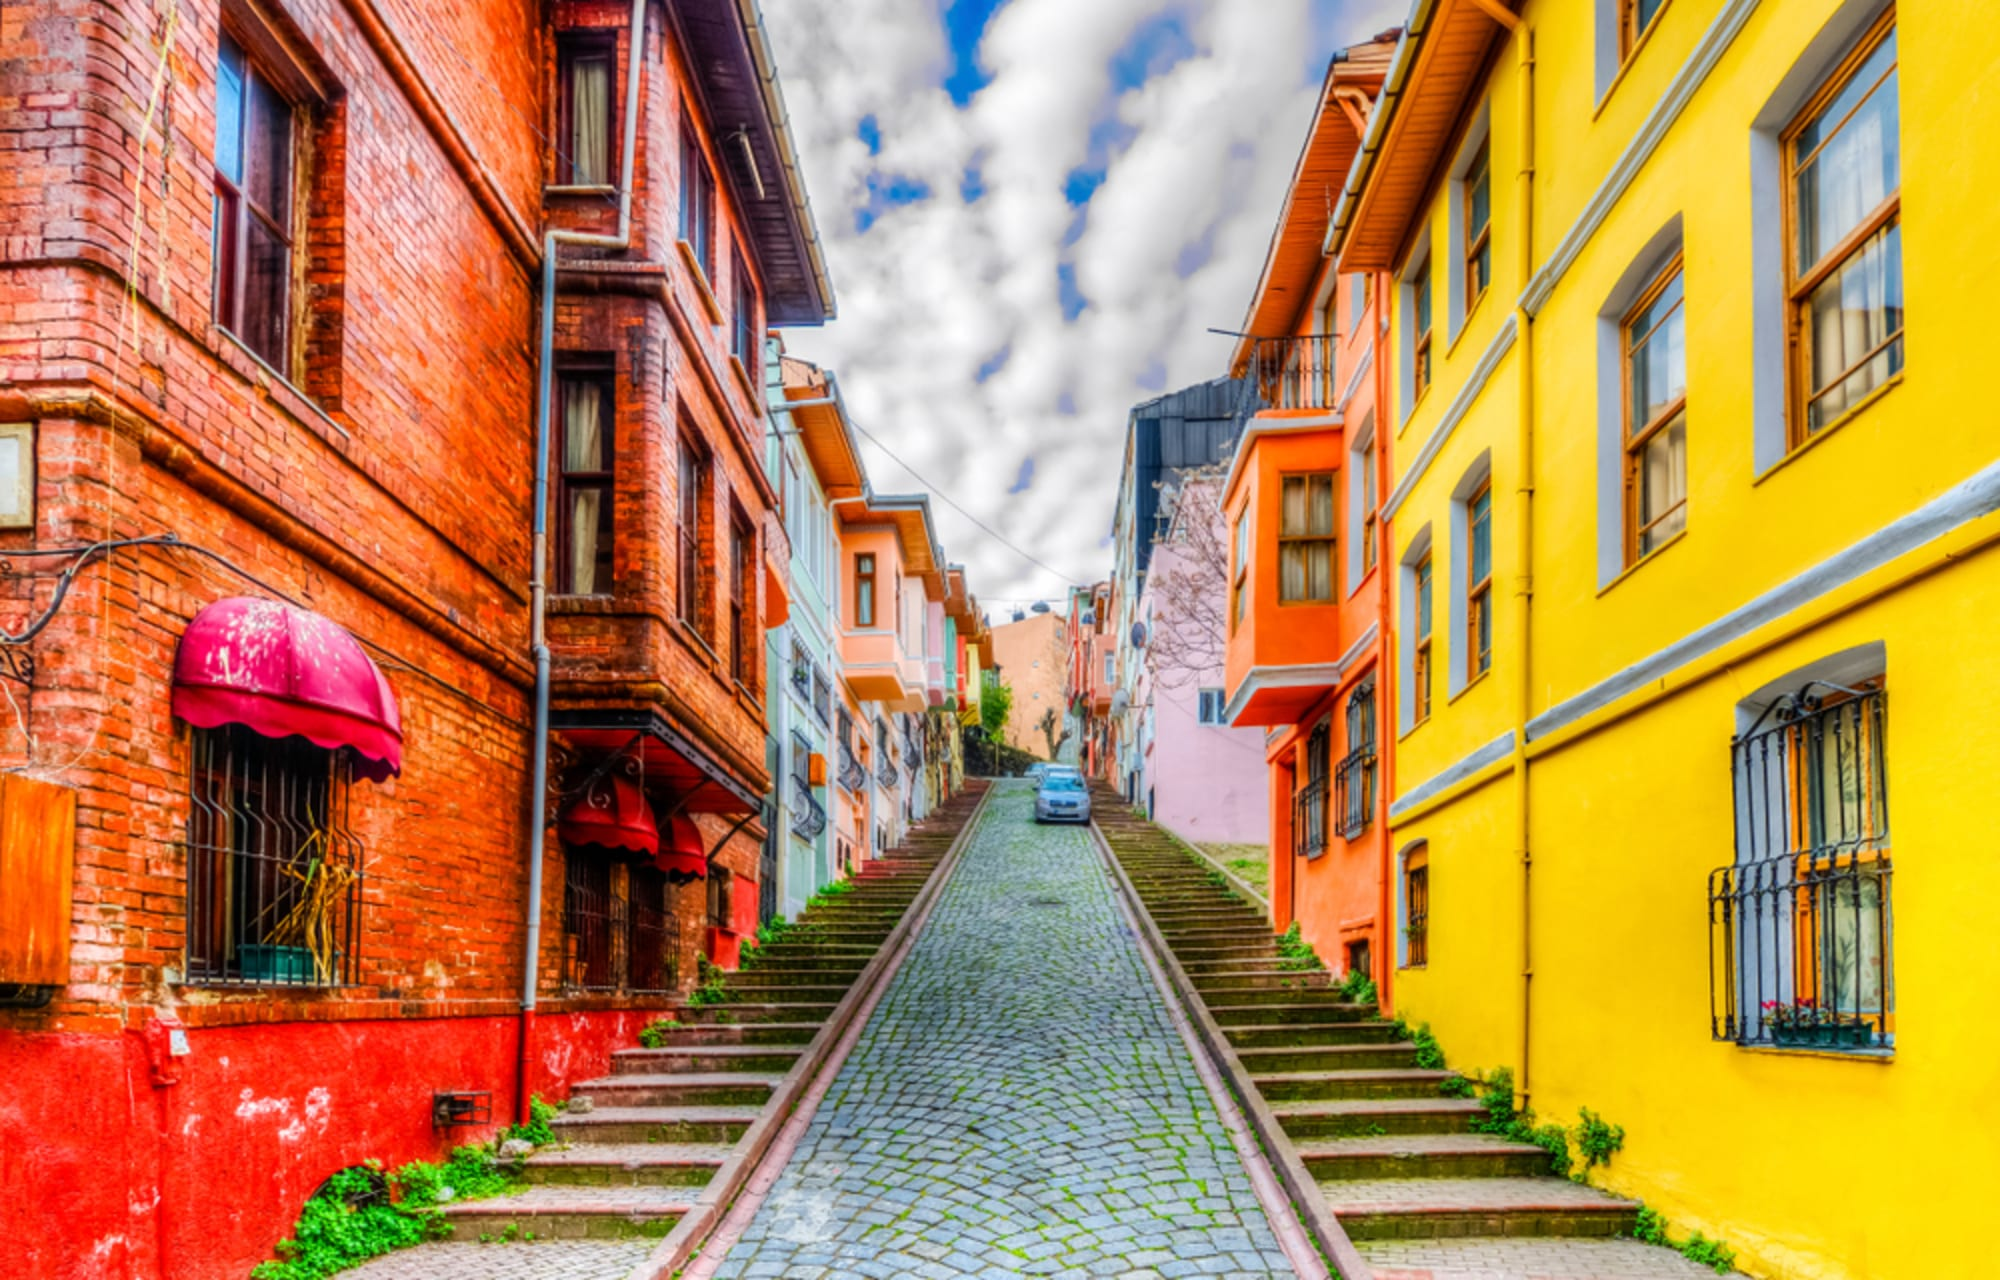 Istanbul - Colorful Ottoman Houses in Residential Neighborhoods